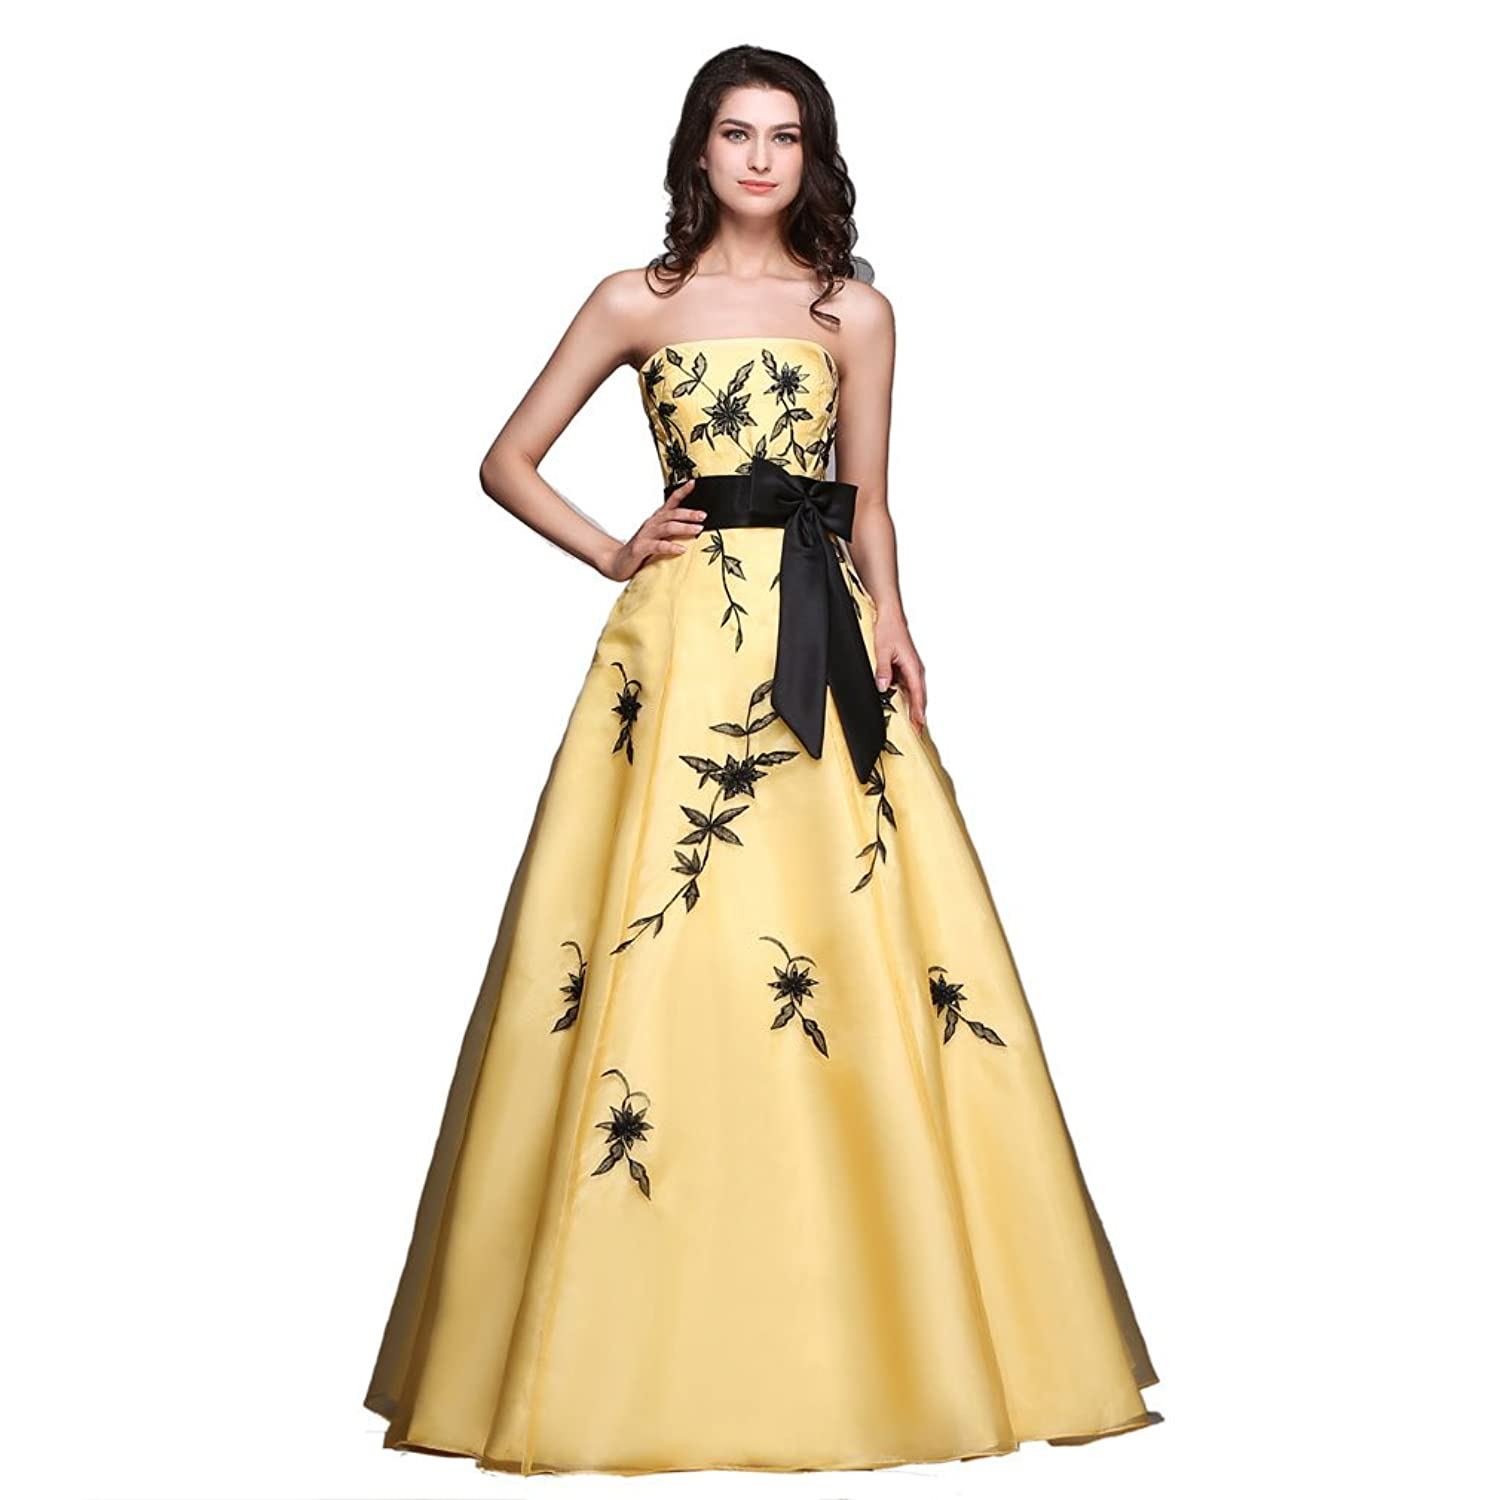 Mkleids Women's Yellow&black Embroidery A-line Prom dresses